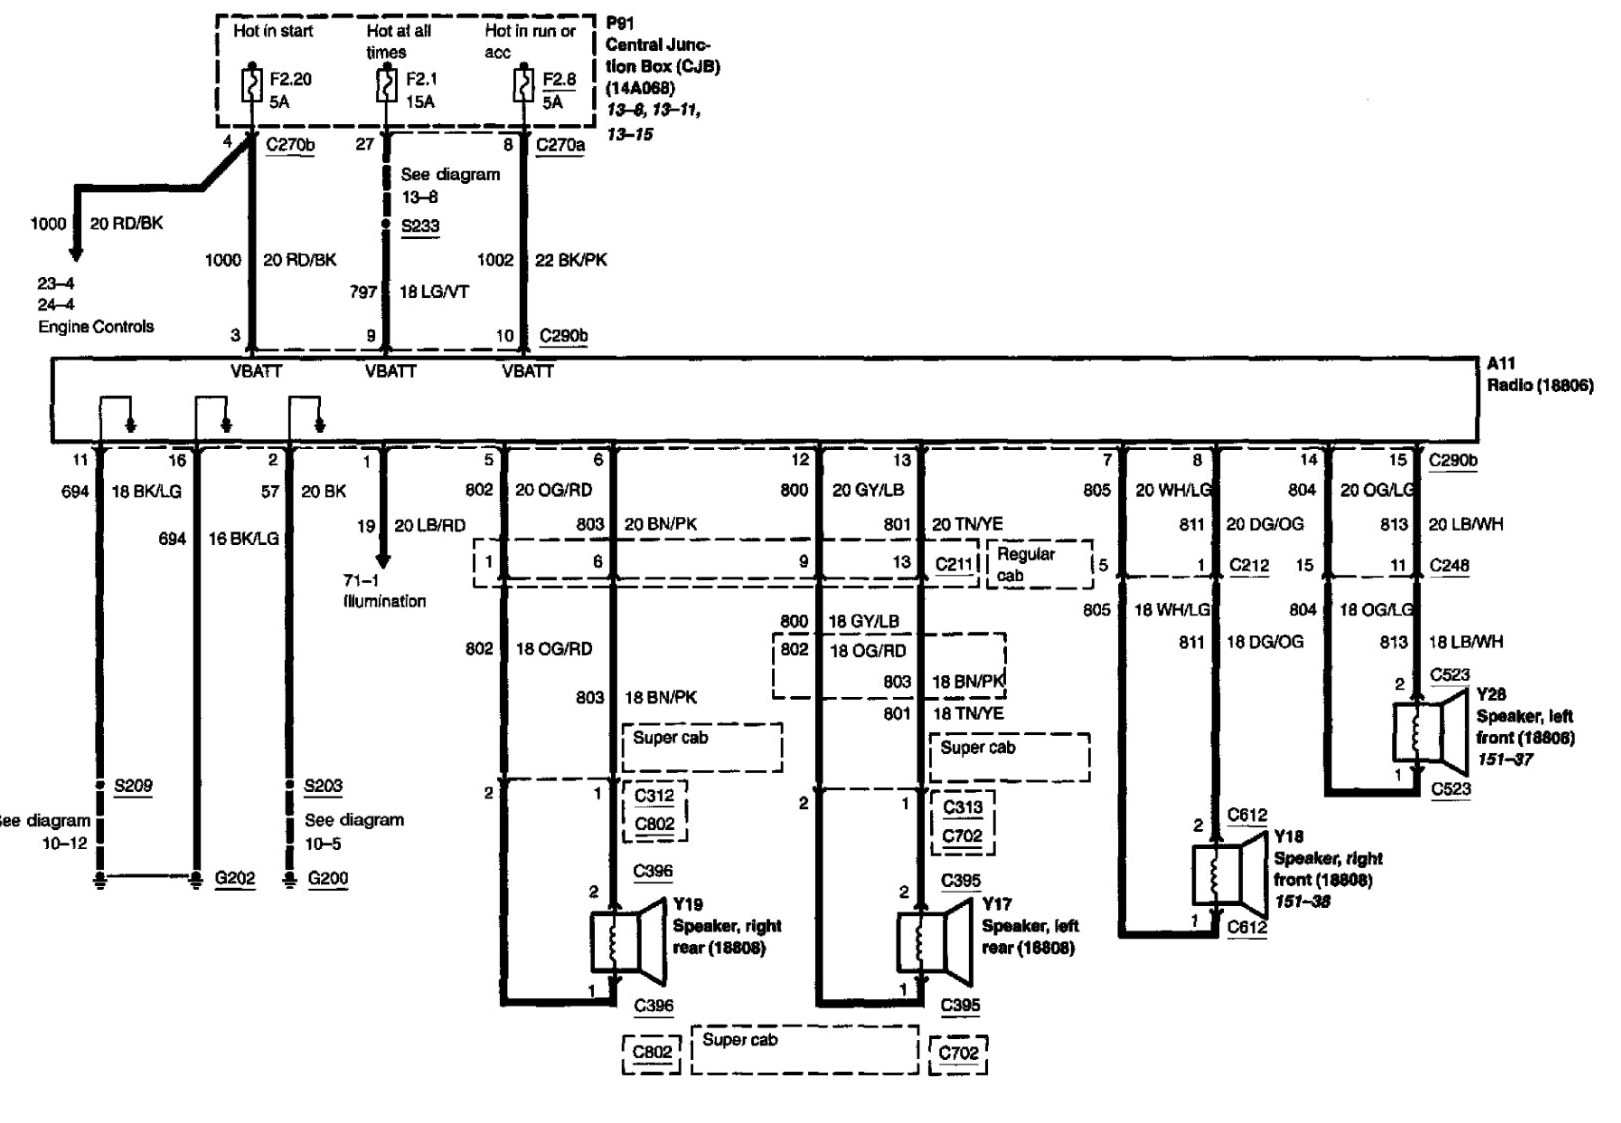 1998 Ford Expedition Radio Wiring Diagram With F150 Speaker New And - 1998 Ford F150 Radio Wiring Diagram